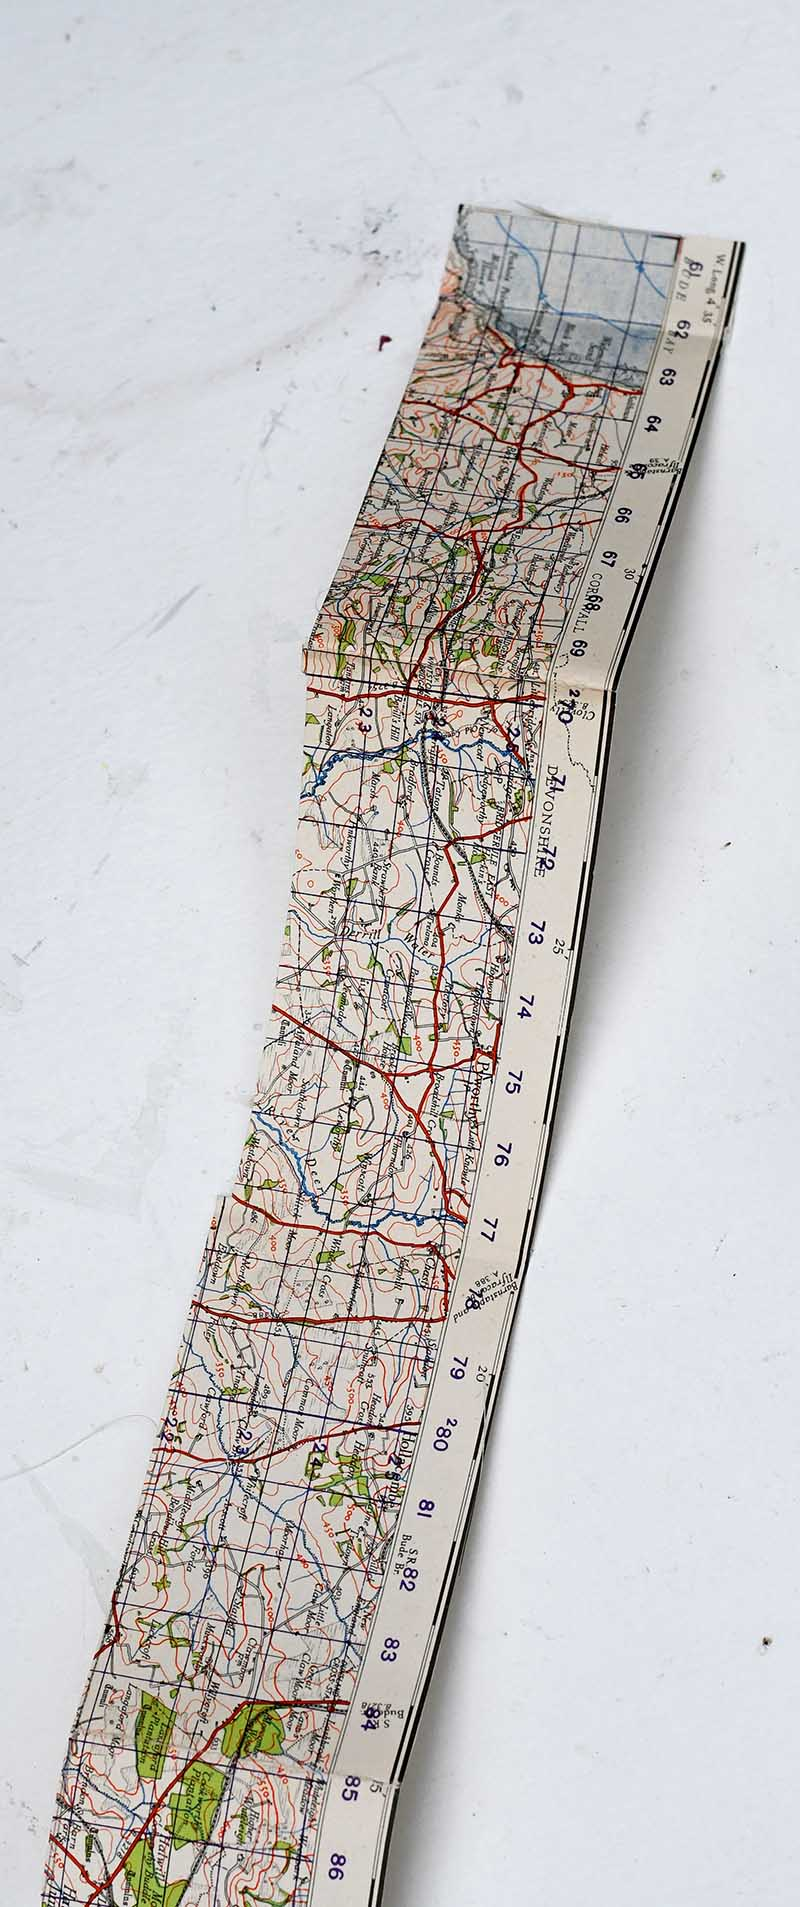 Cut map strips